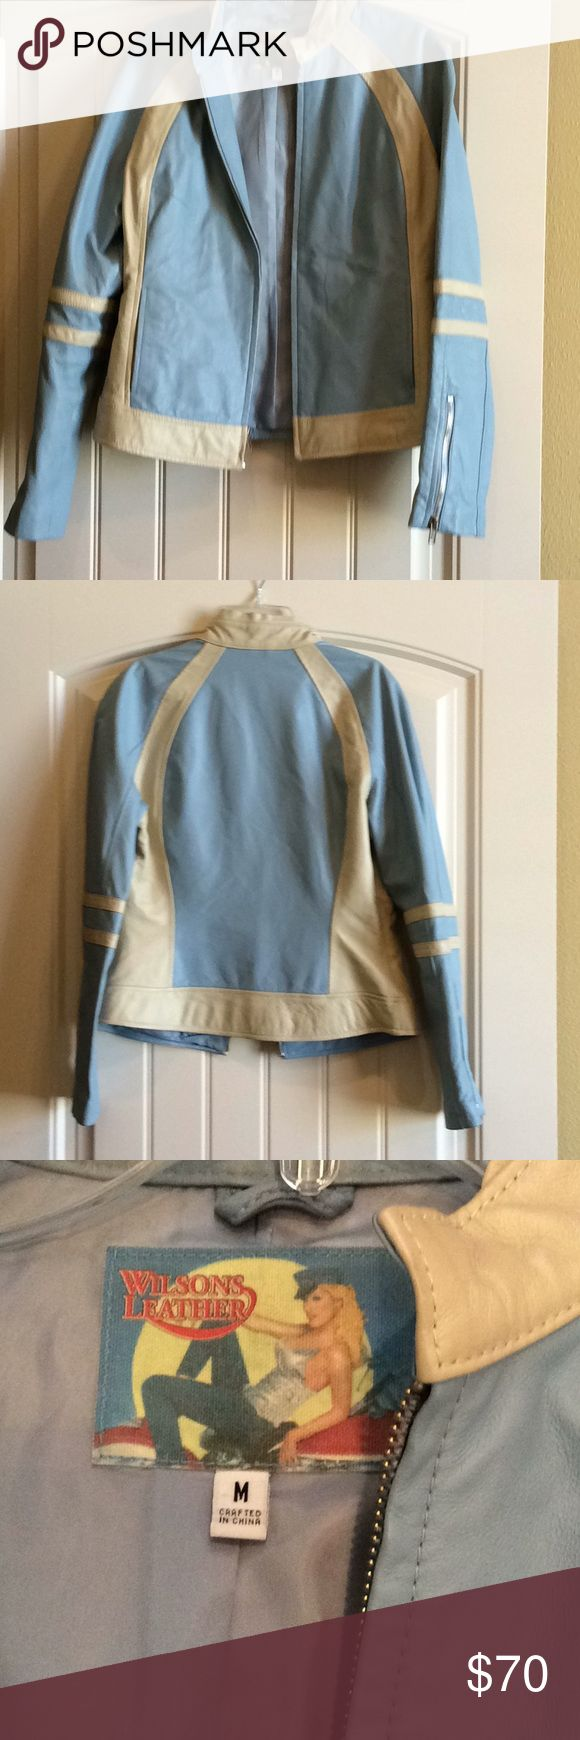 Wilson's Leather Varsity Jacket Baby blue/cream leather jacket with zips in sleeve.So cute with jeans this is reposh I am size small Wilsons Leather Other